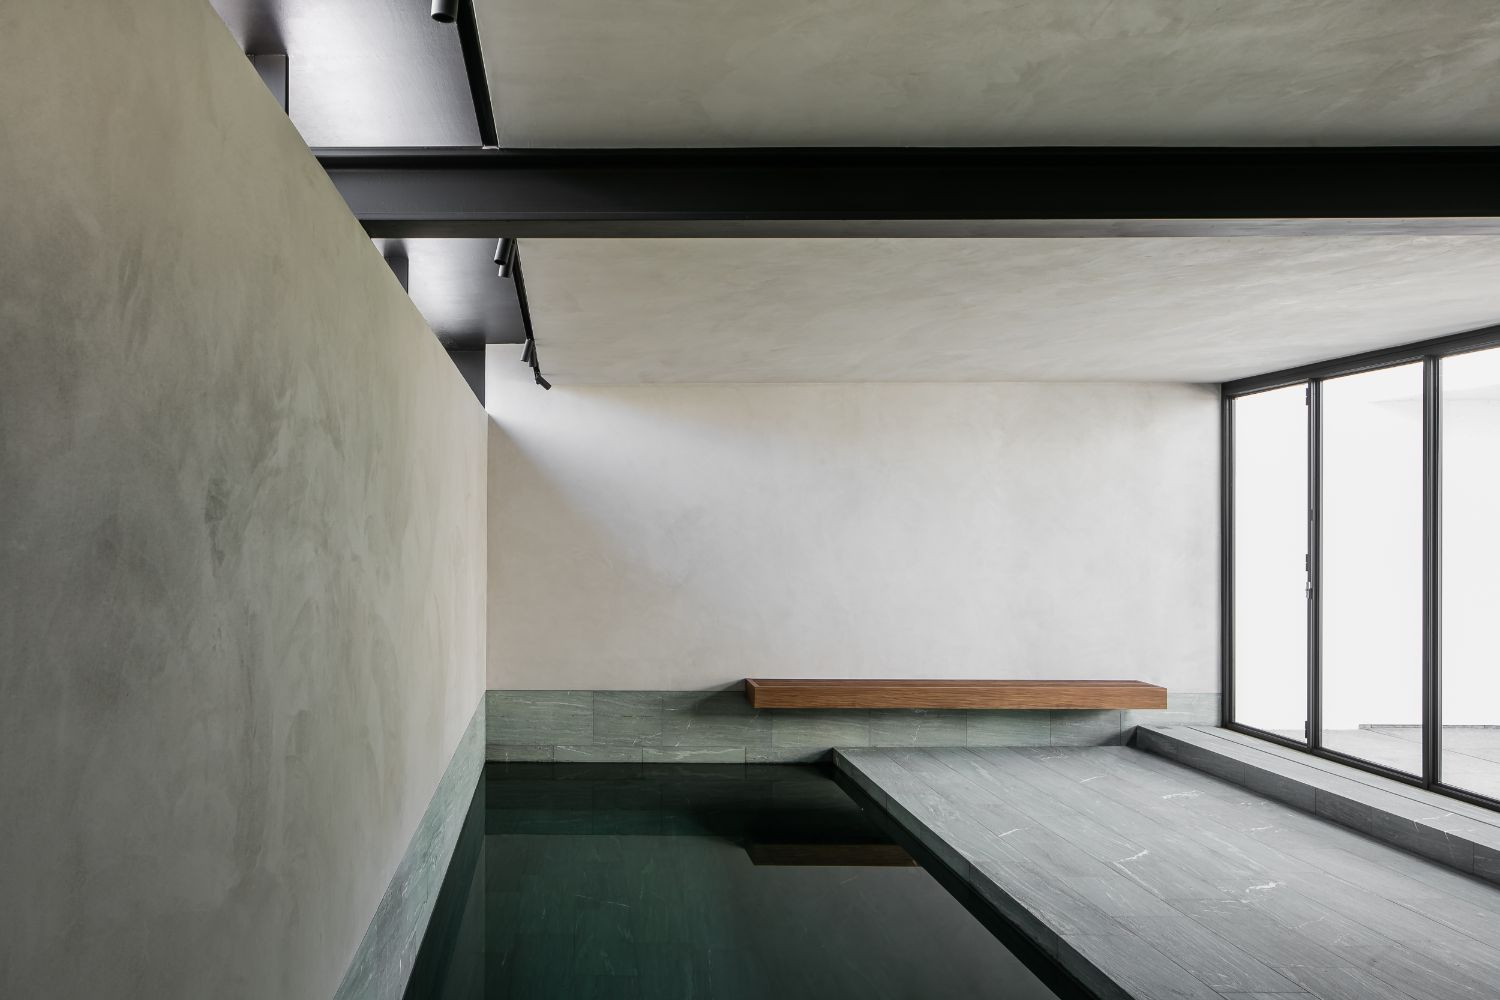 Rietveldprojects - House MP - Indoor swimminpool - Pic by Cafeïne 6